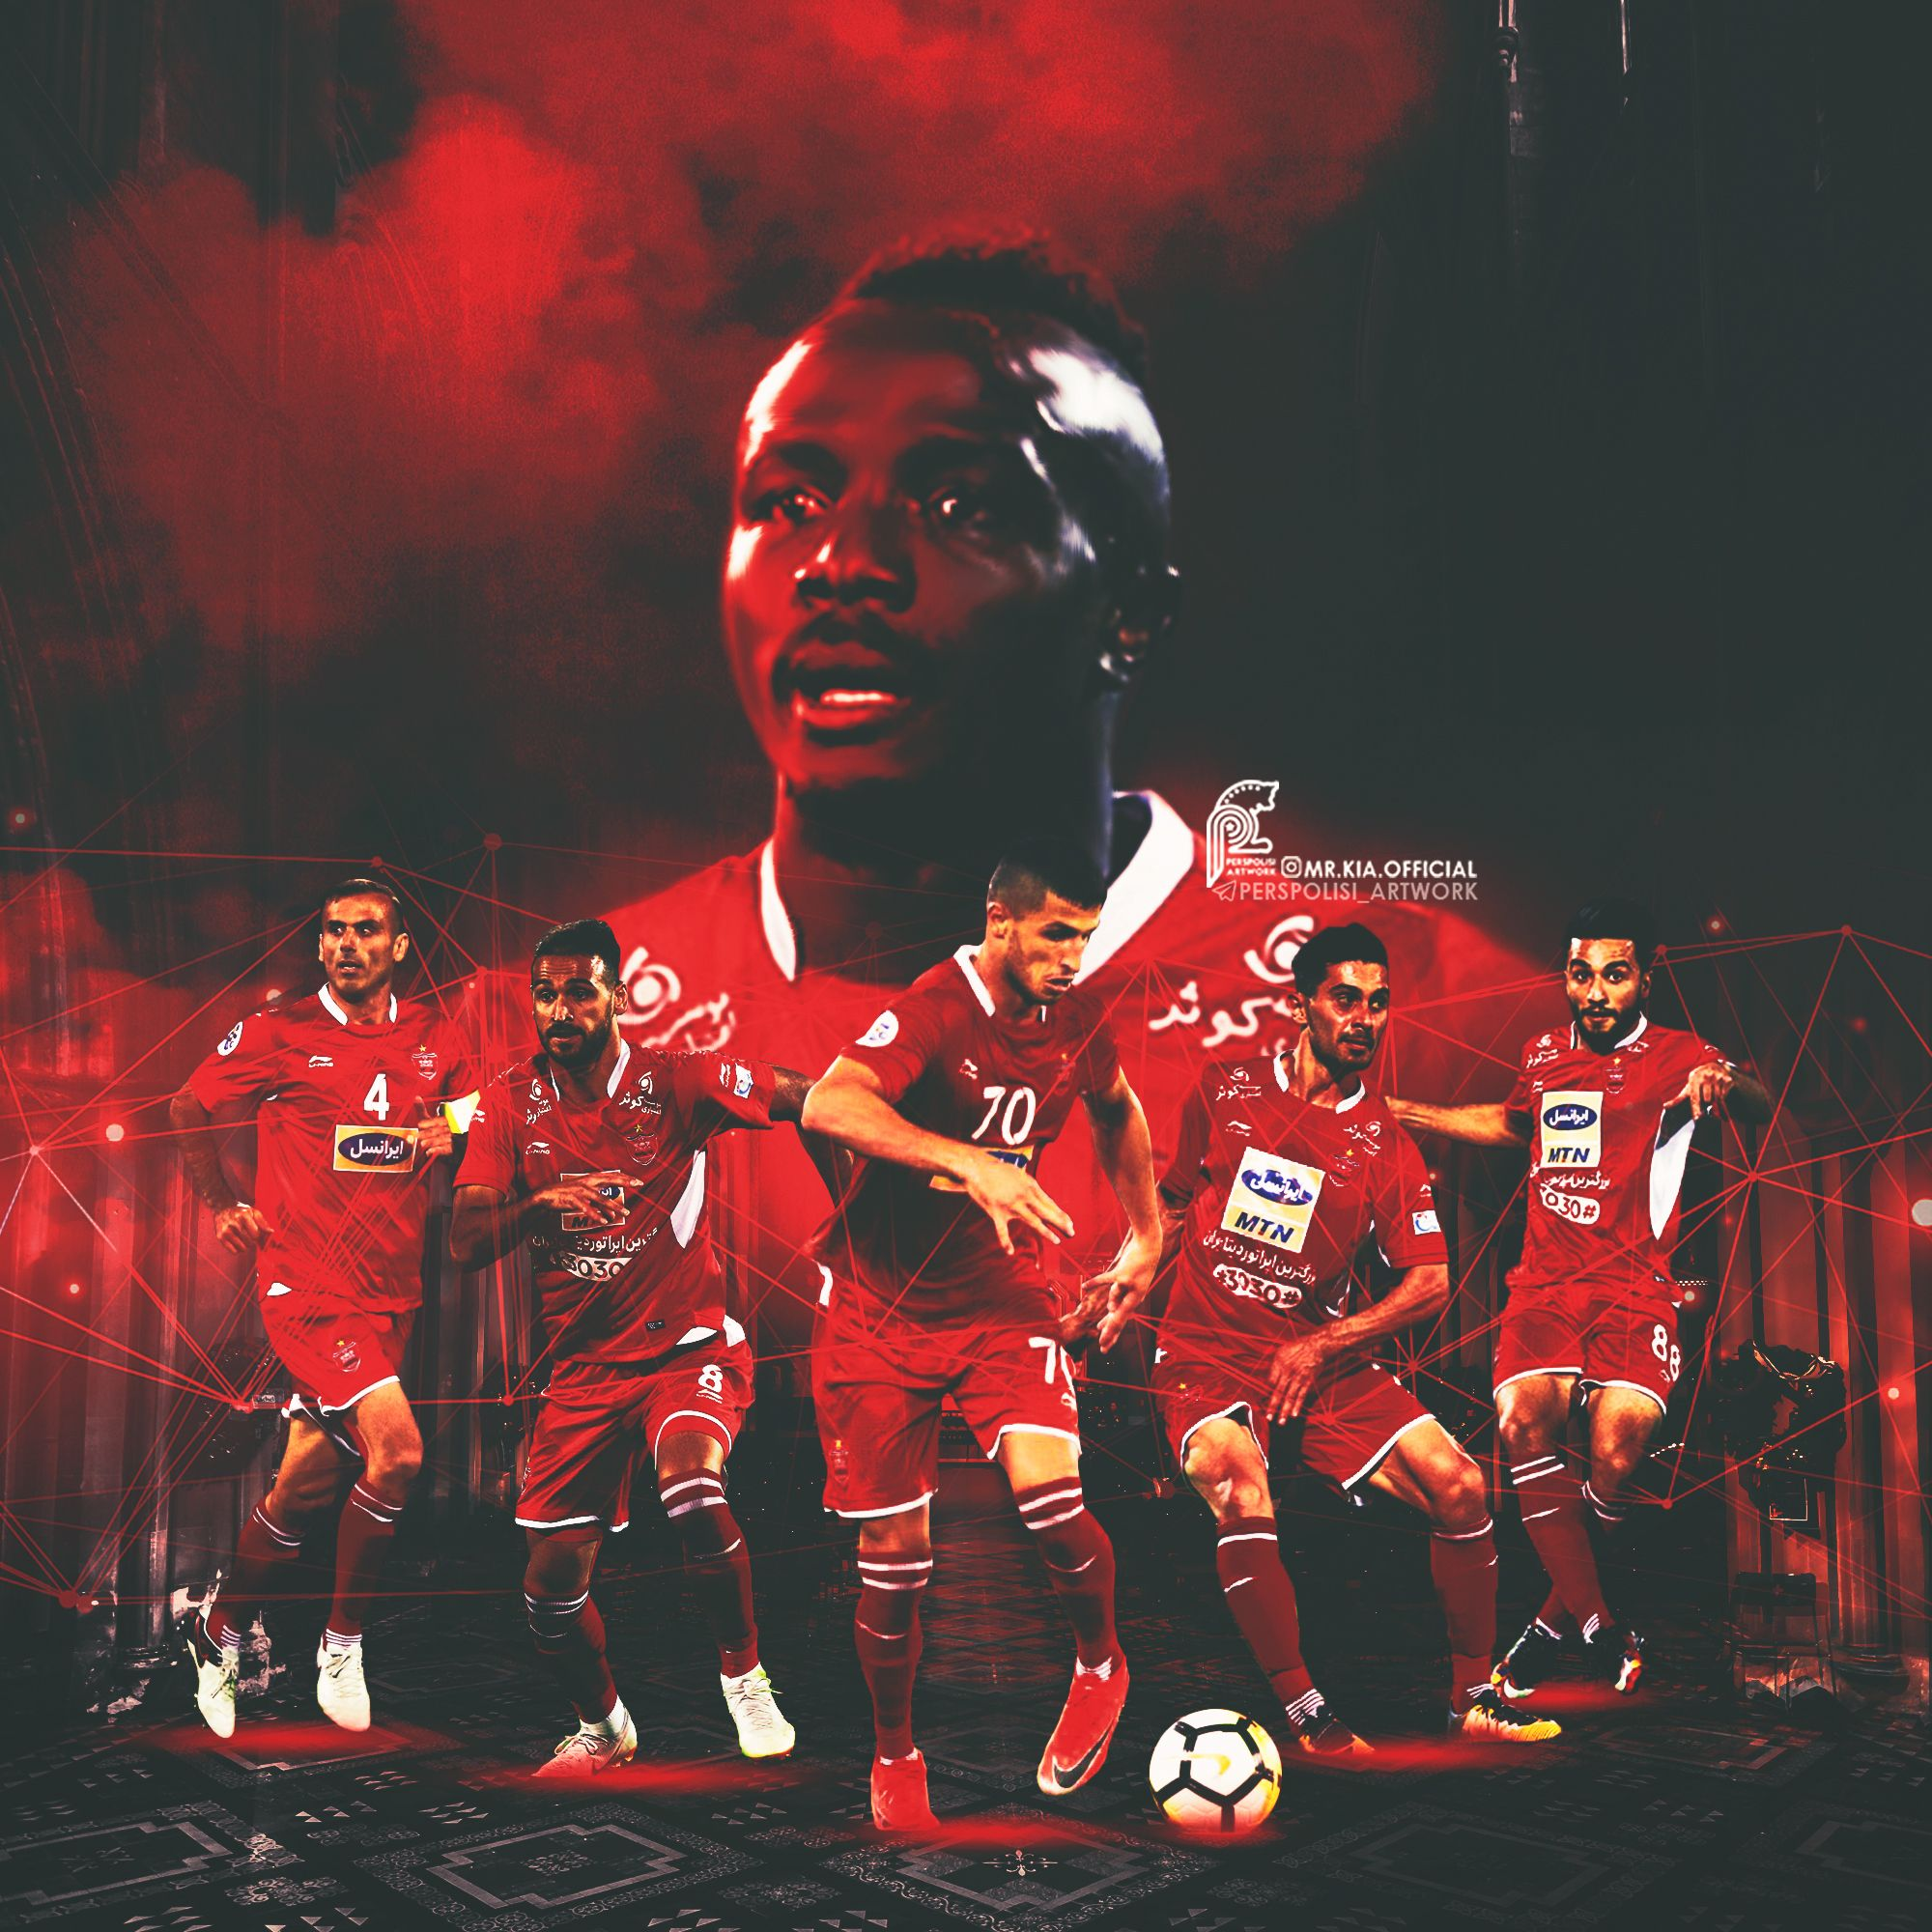 Persepolis Perspolis Iran Football Footydesign Design Footballedit Footyedit Photoshop Perspolisi Artwork پرسپولیس طراح Footy Soccer Kits Football